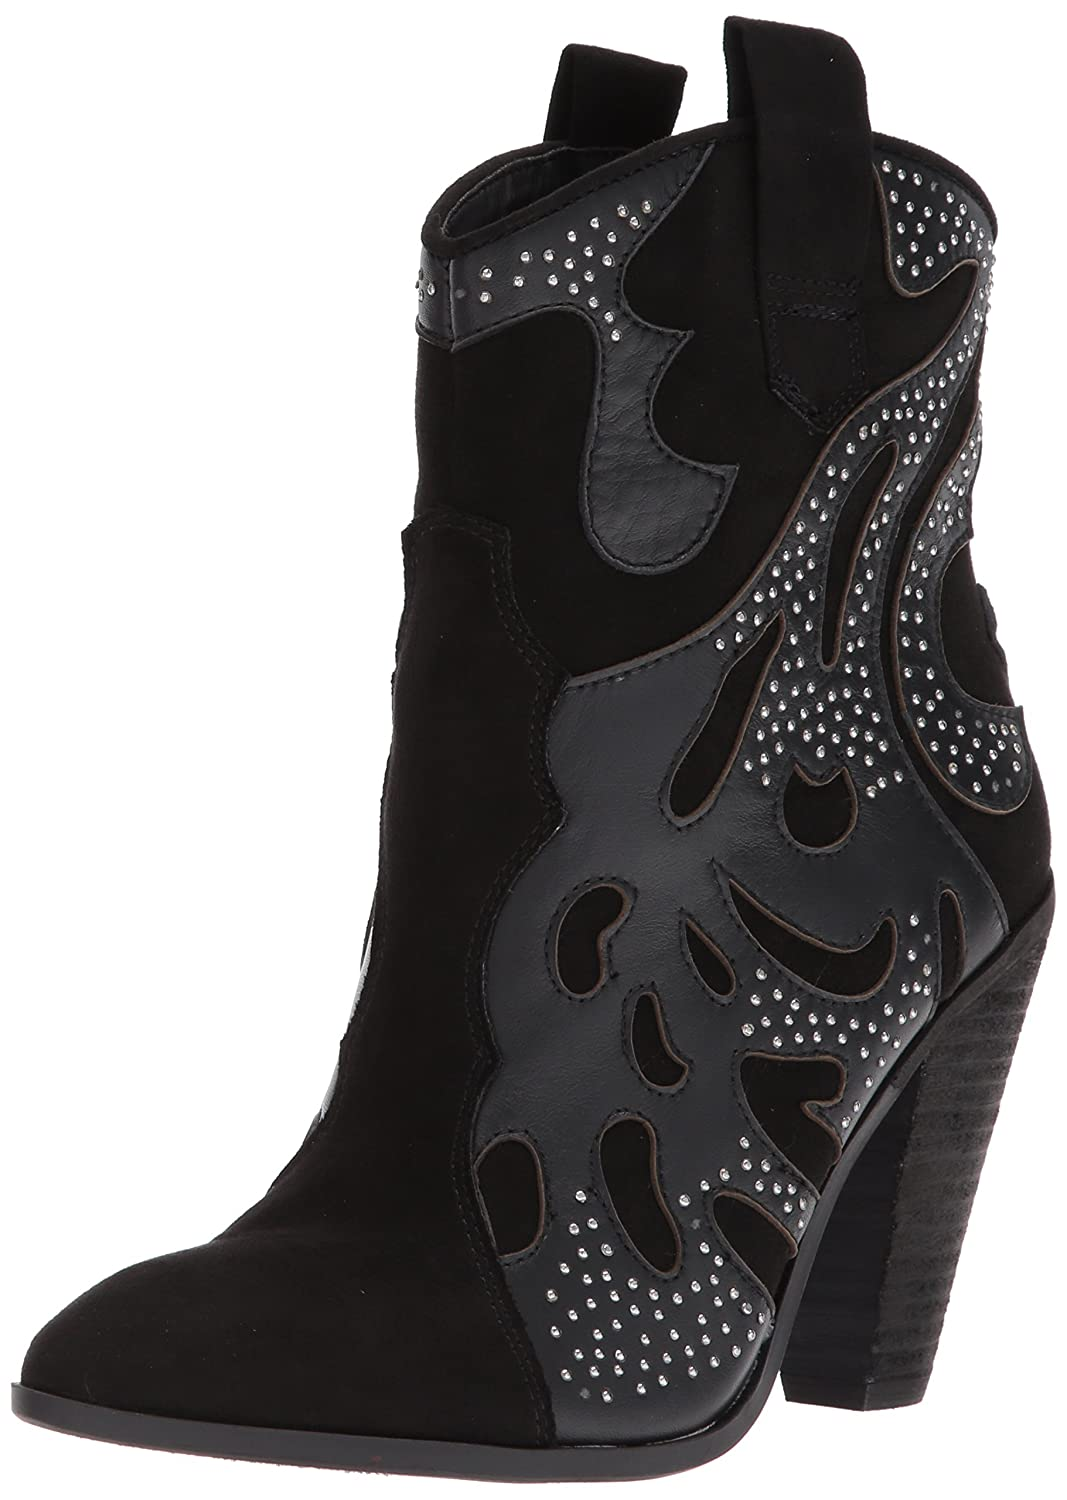 Carlos by Carlos Santana Women's Sterling Fashion Boot B06XHVXHWR 11 M M US|Black